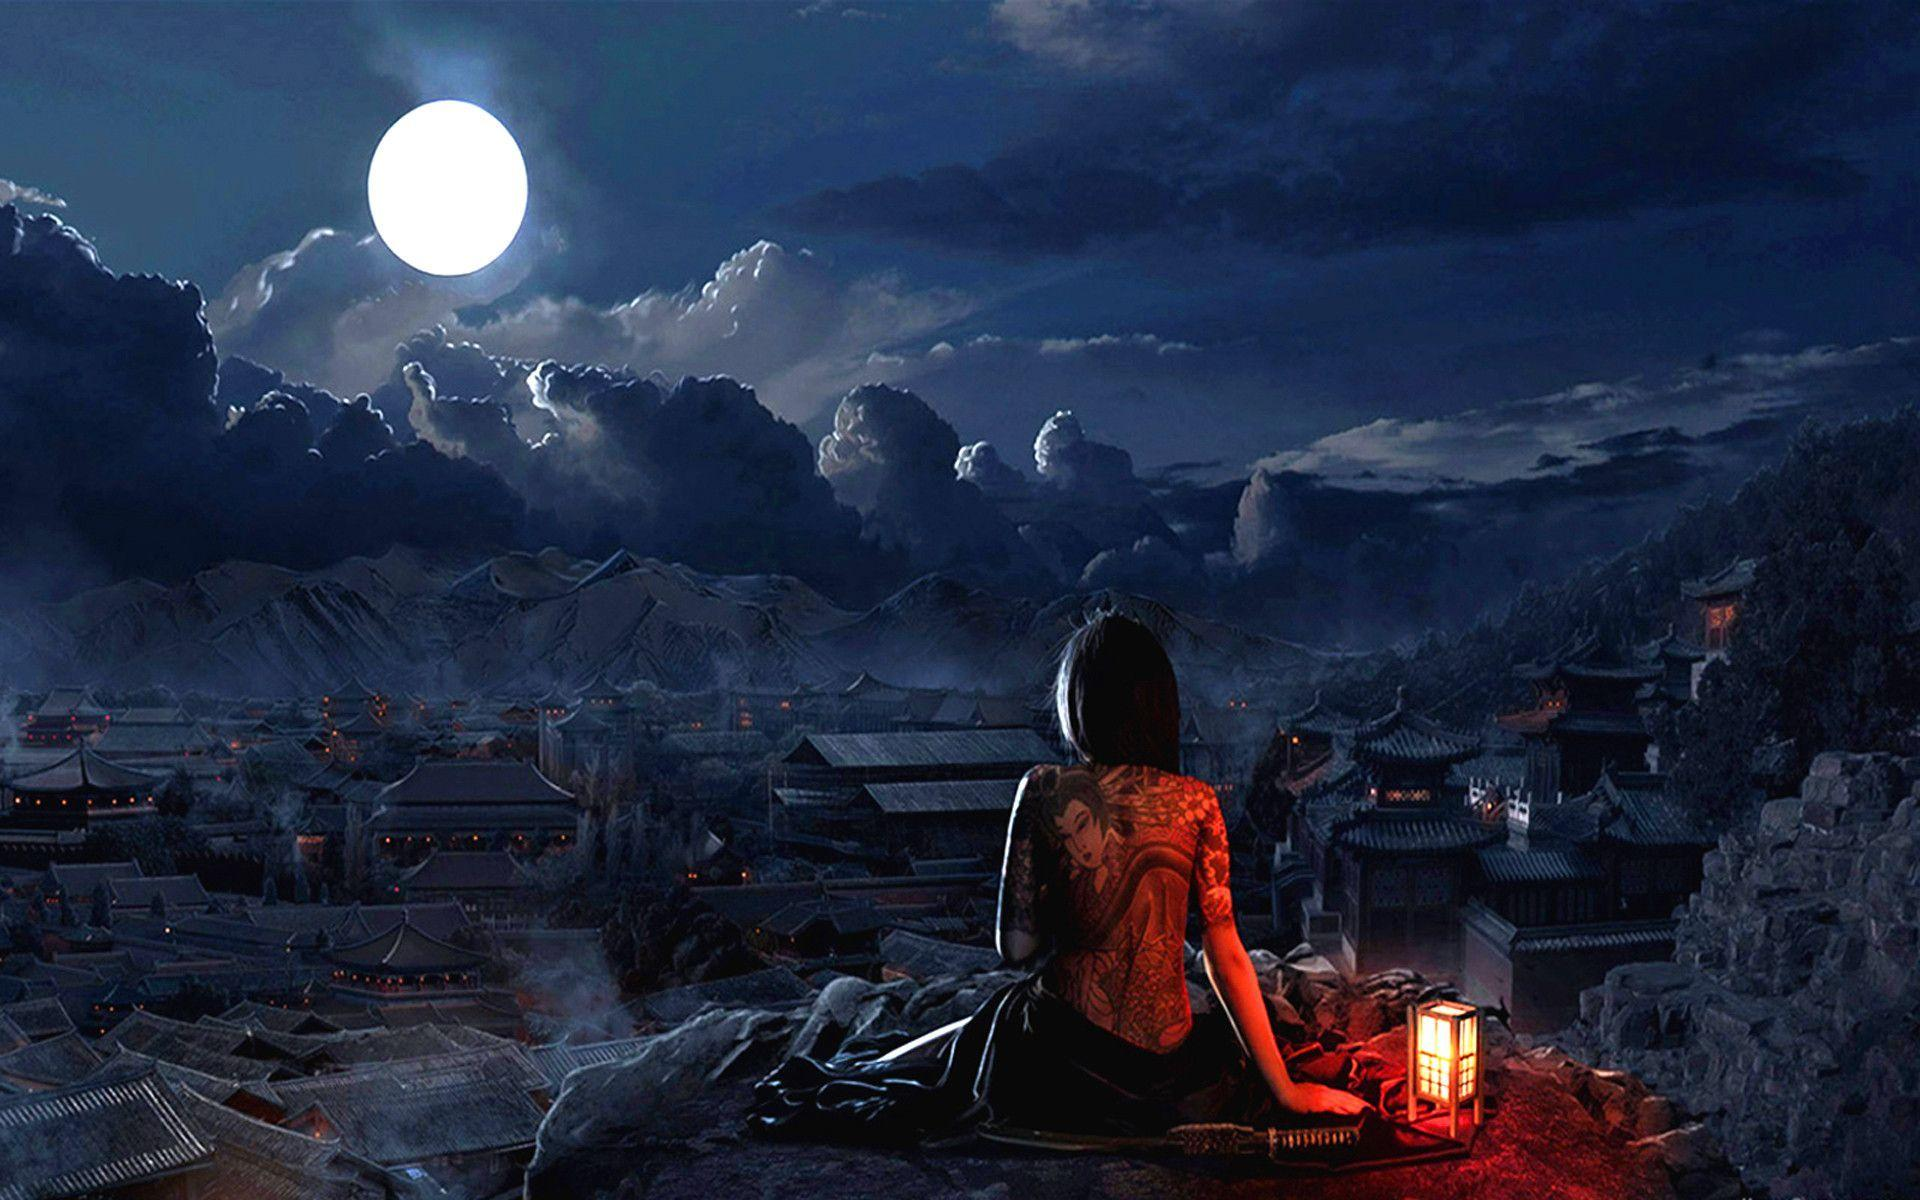 Girl With Tatto Full Moon Wallpaper #3828 Wallpaper   Wallshed.